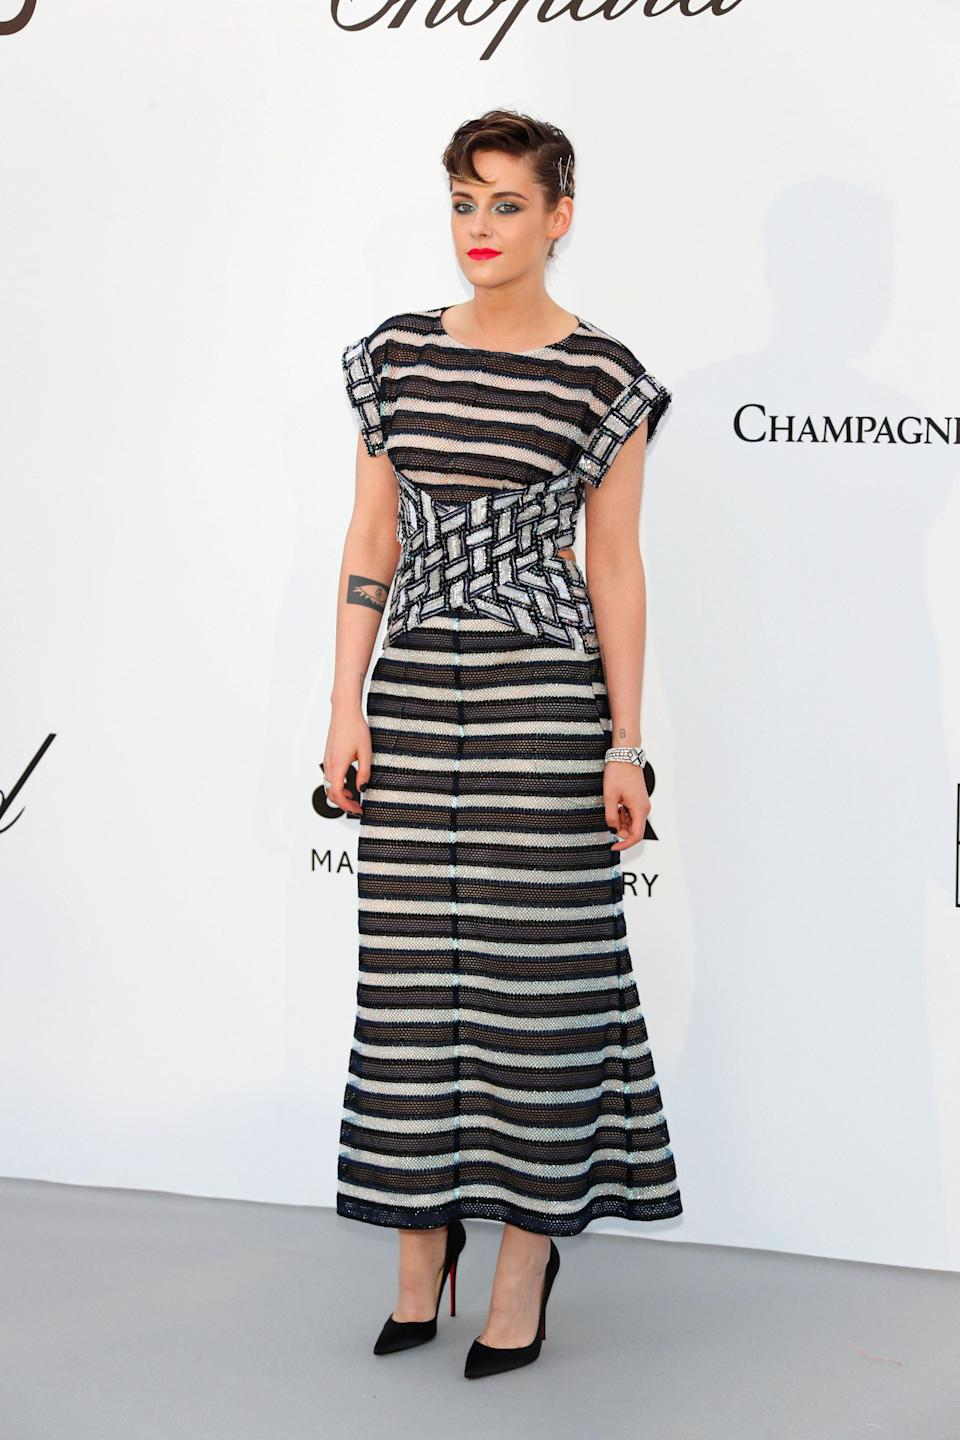 <p>Kristen Stewart saved her best look until last, as she donned monochrome Chanel stripes at the amfAR Gala during Cannes Film Festival. <em>[Photo: Getty]</em> </p>